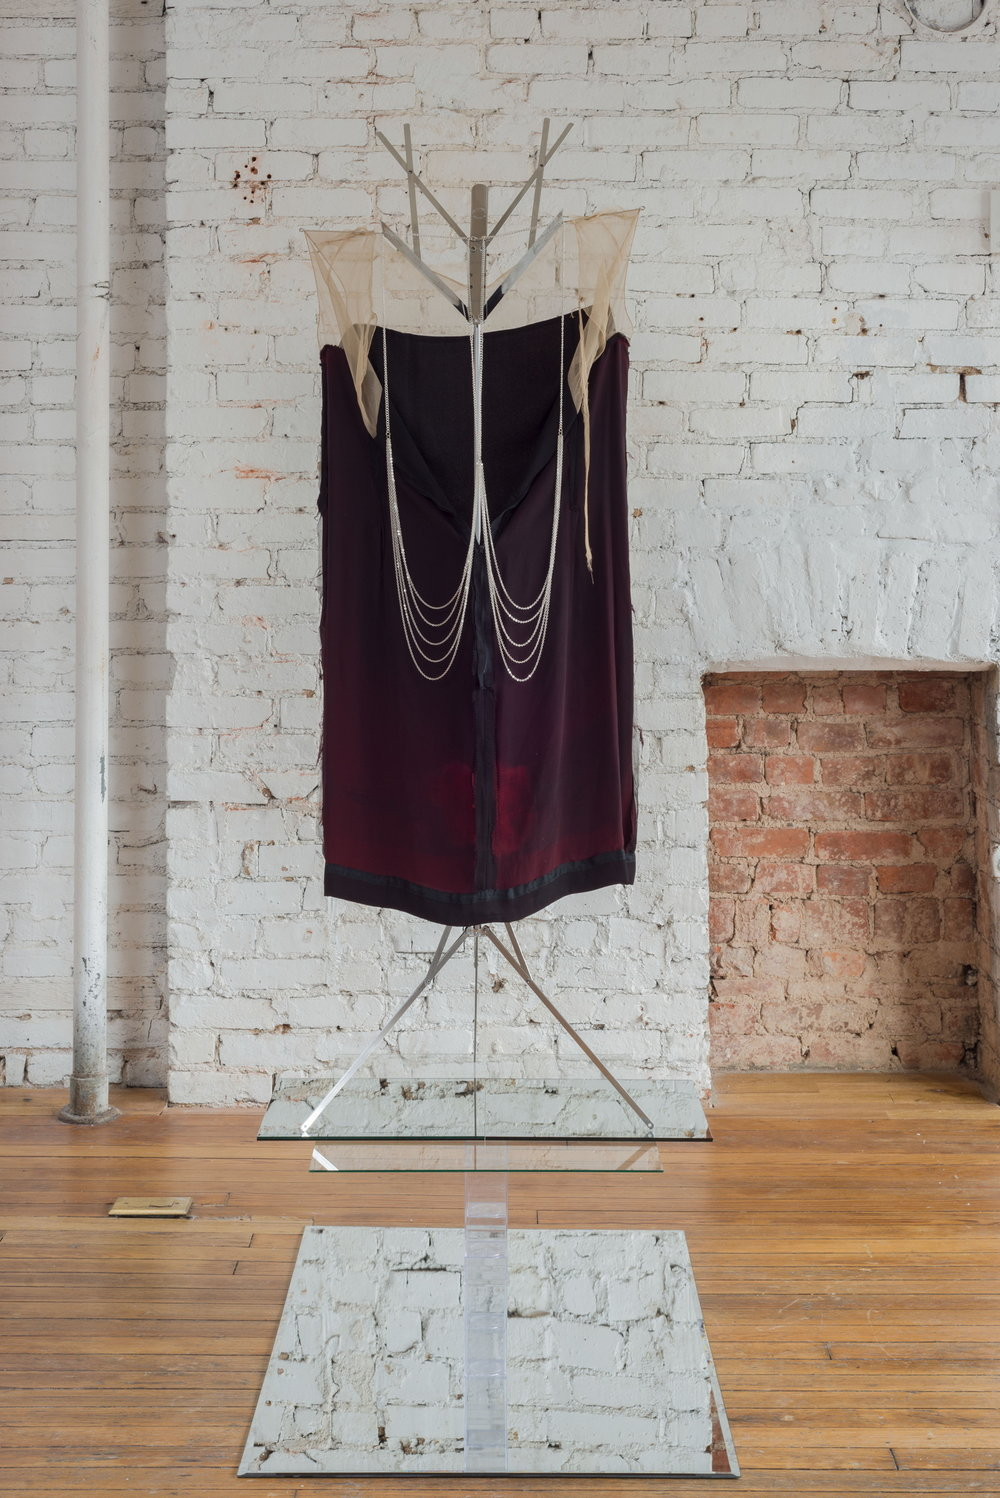 Kayode Ojo,  Untitled , 2016, Vintage dress lining, Jane Stone Hot Sexy Simple Unibody Bilayer Silver Color Tassels Body Chain Necklace Fashion Statement Jewelry, New Body Necklace (Fn1095-Silver), Hamilton Stands KB400 Classic American Folding Sheet Music Stand (Chrome), Clear Amac, Boxes, mirror, glass, Dimensions variable.